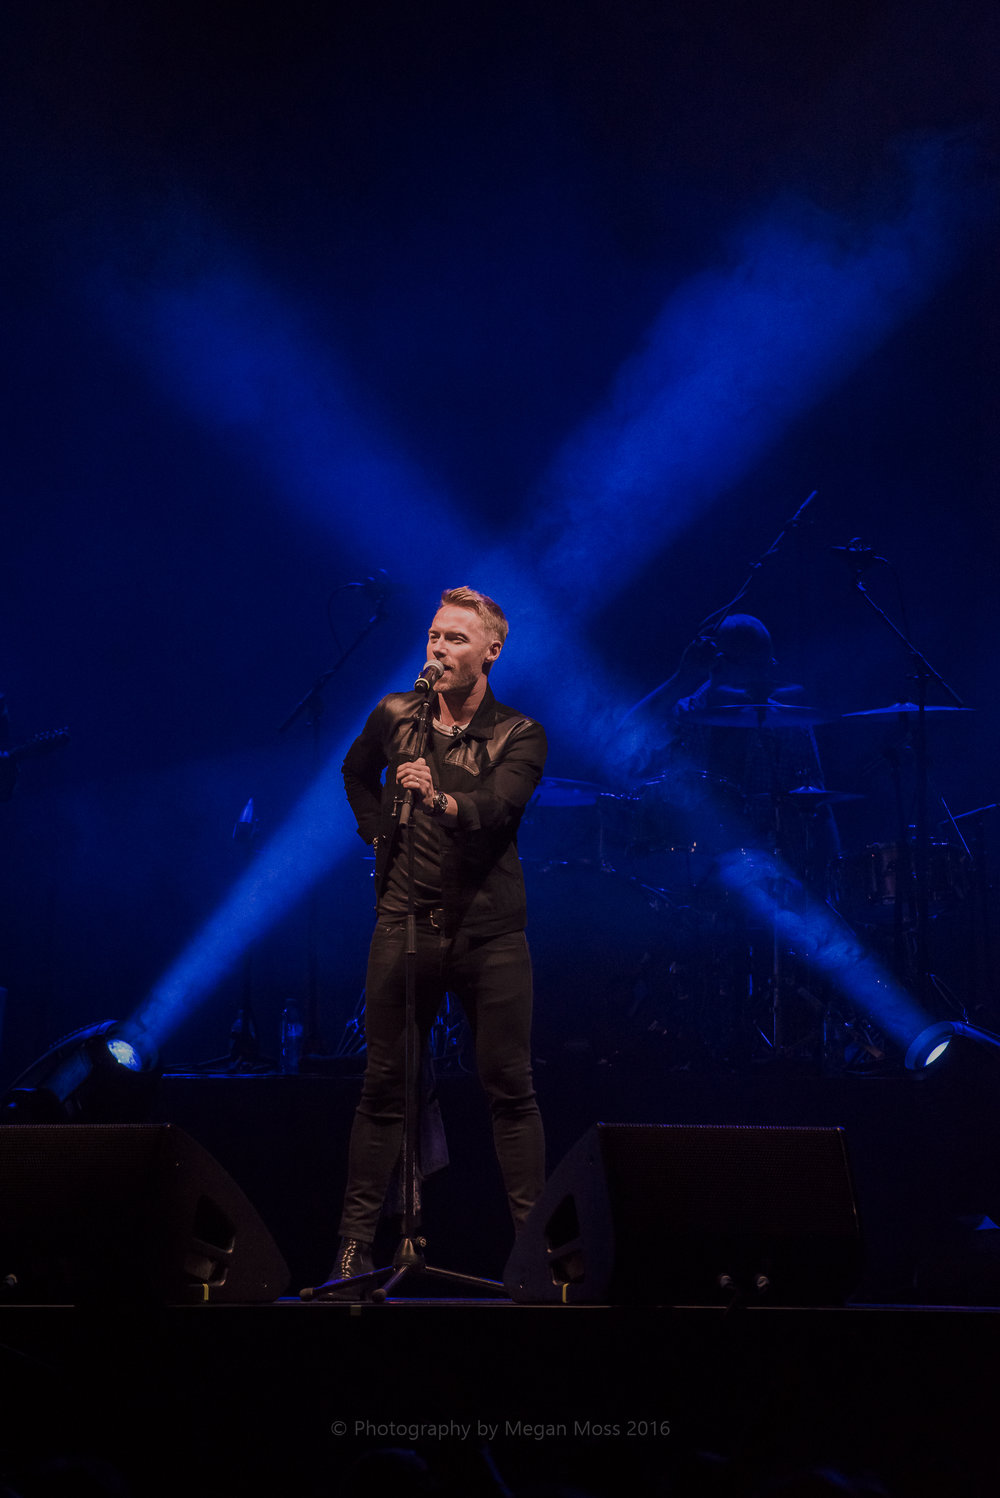 Ronan Keating 4 Nov 16 (3 of 18).jpg